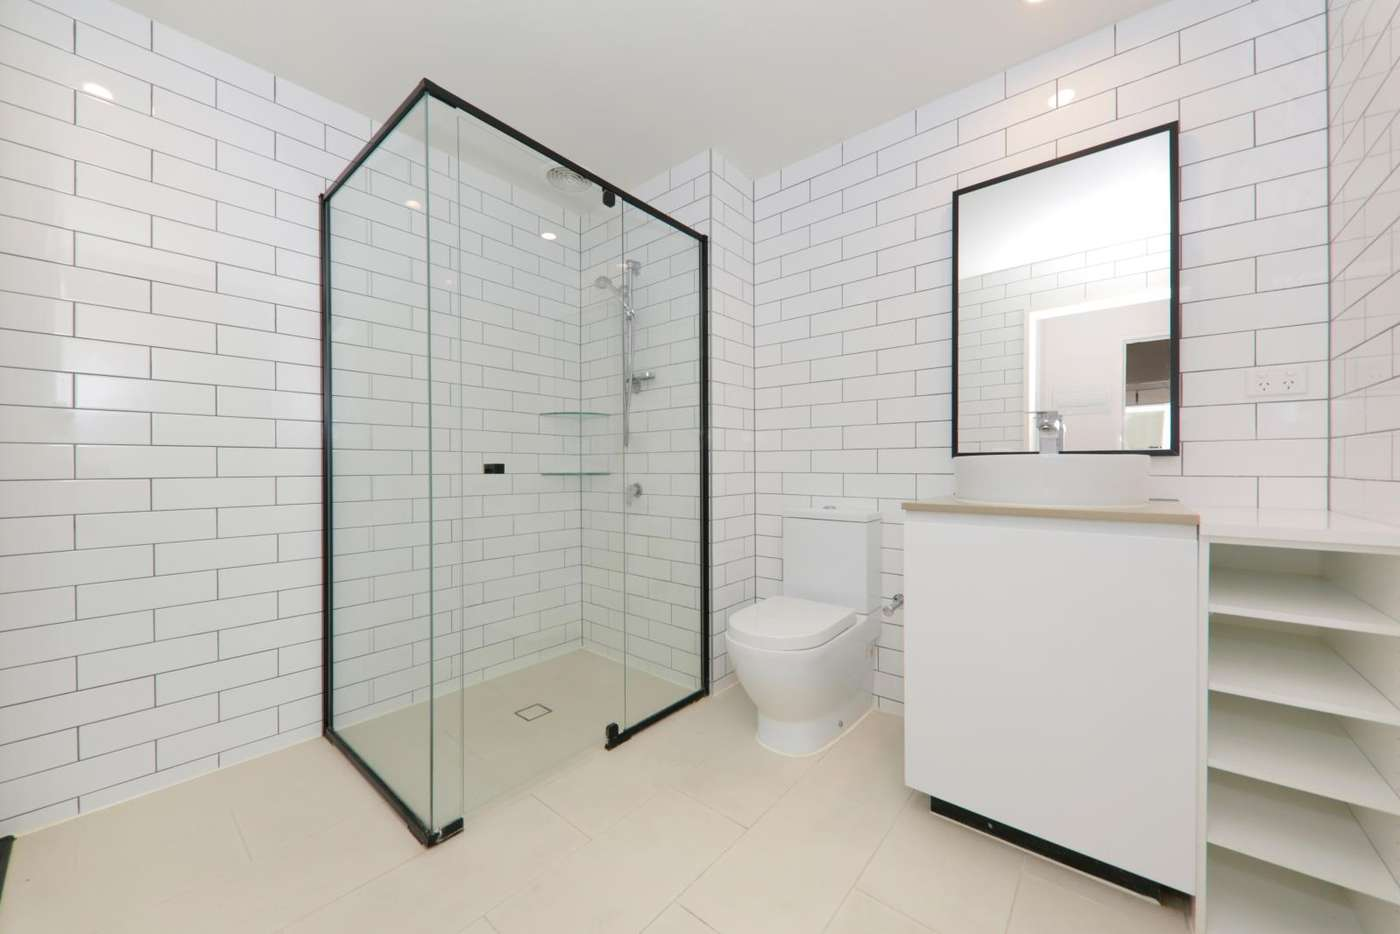 Fifth view of Homely unit listing, 110/8 Garfield Street, Richmond VIC 3121